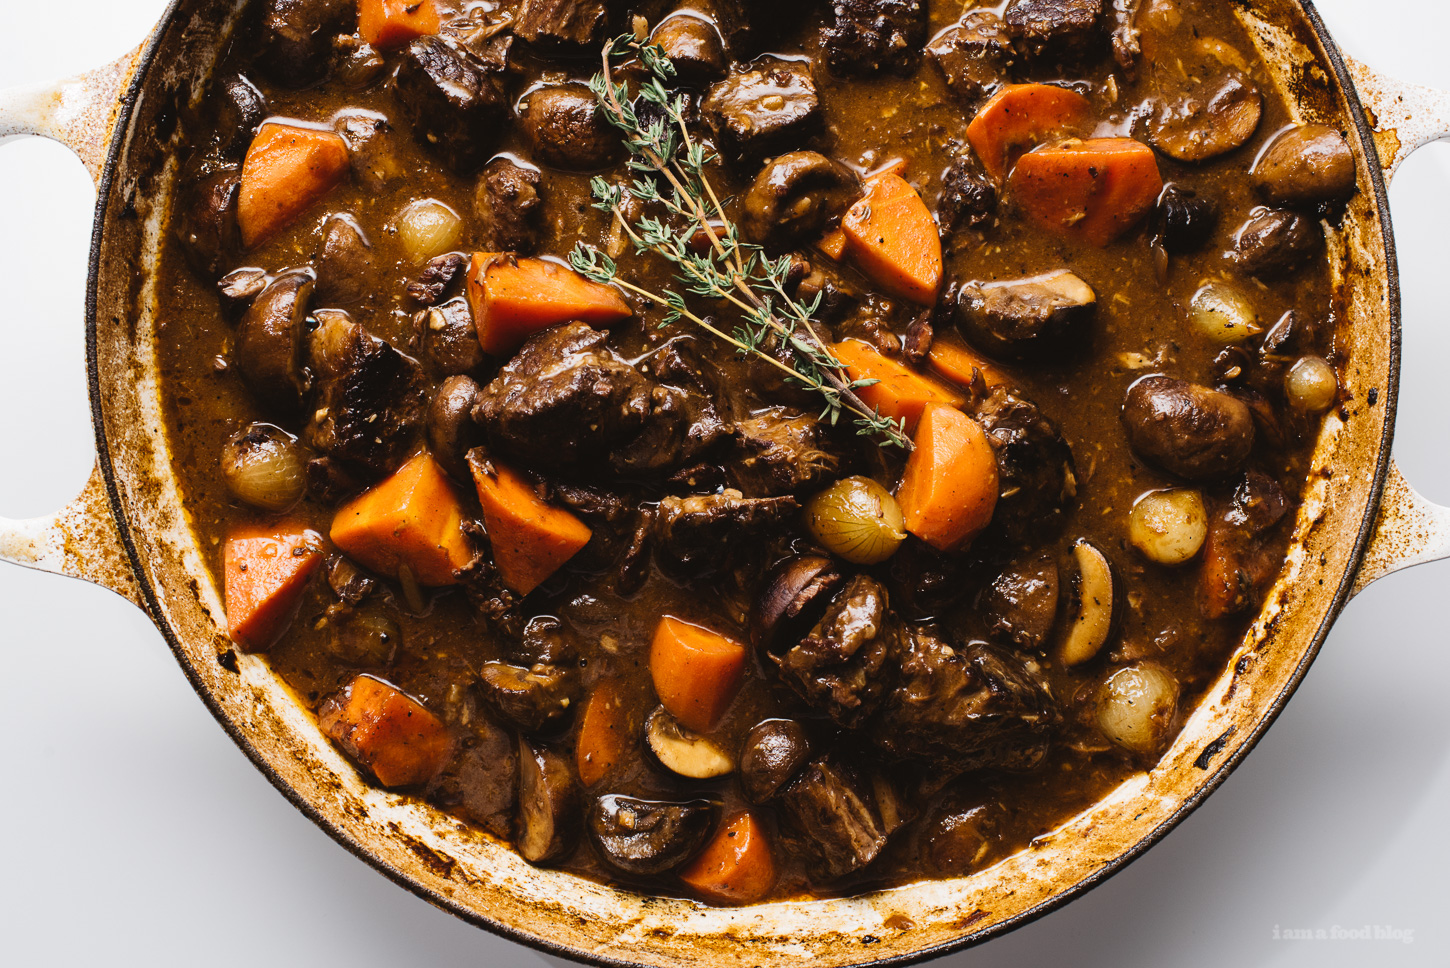 quick and easy beef bourguignon recipe - www.iamafoodblog.com